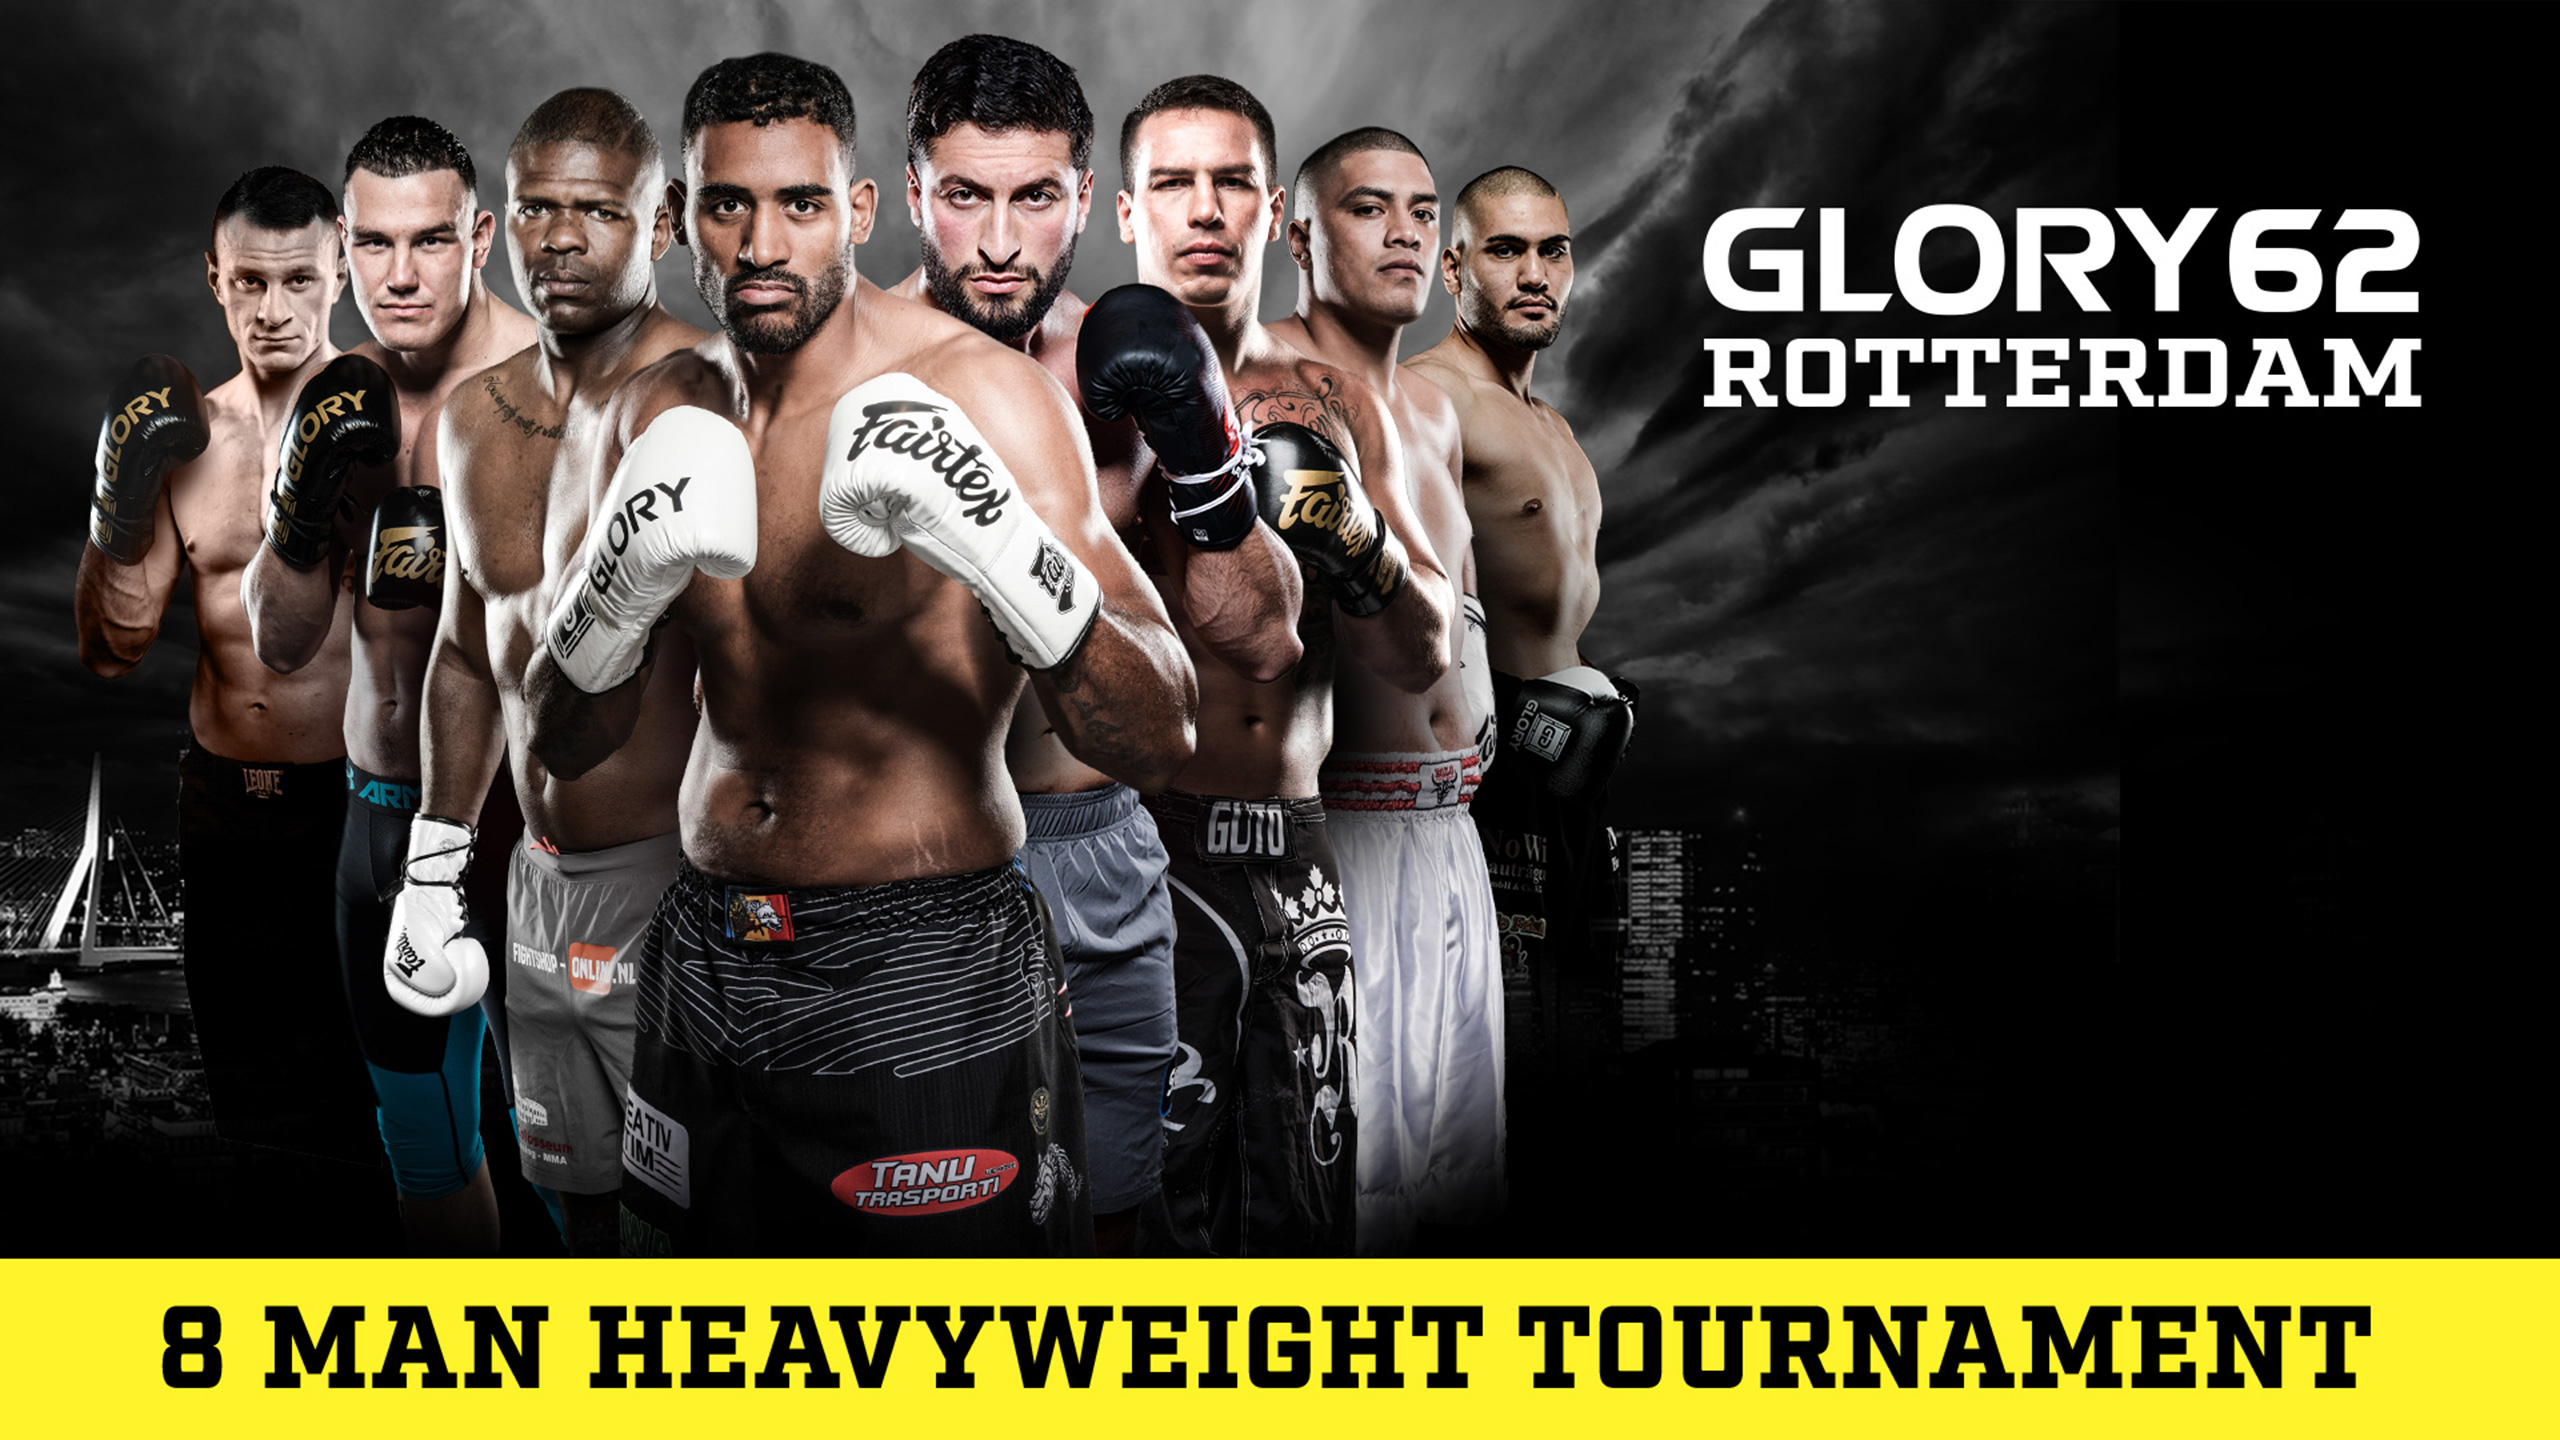 Kickboxing: GLORY 62